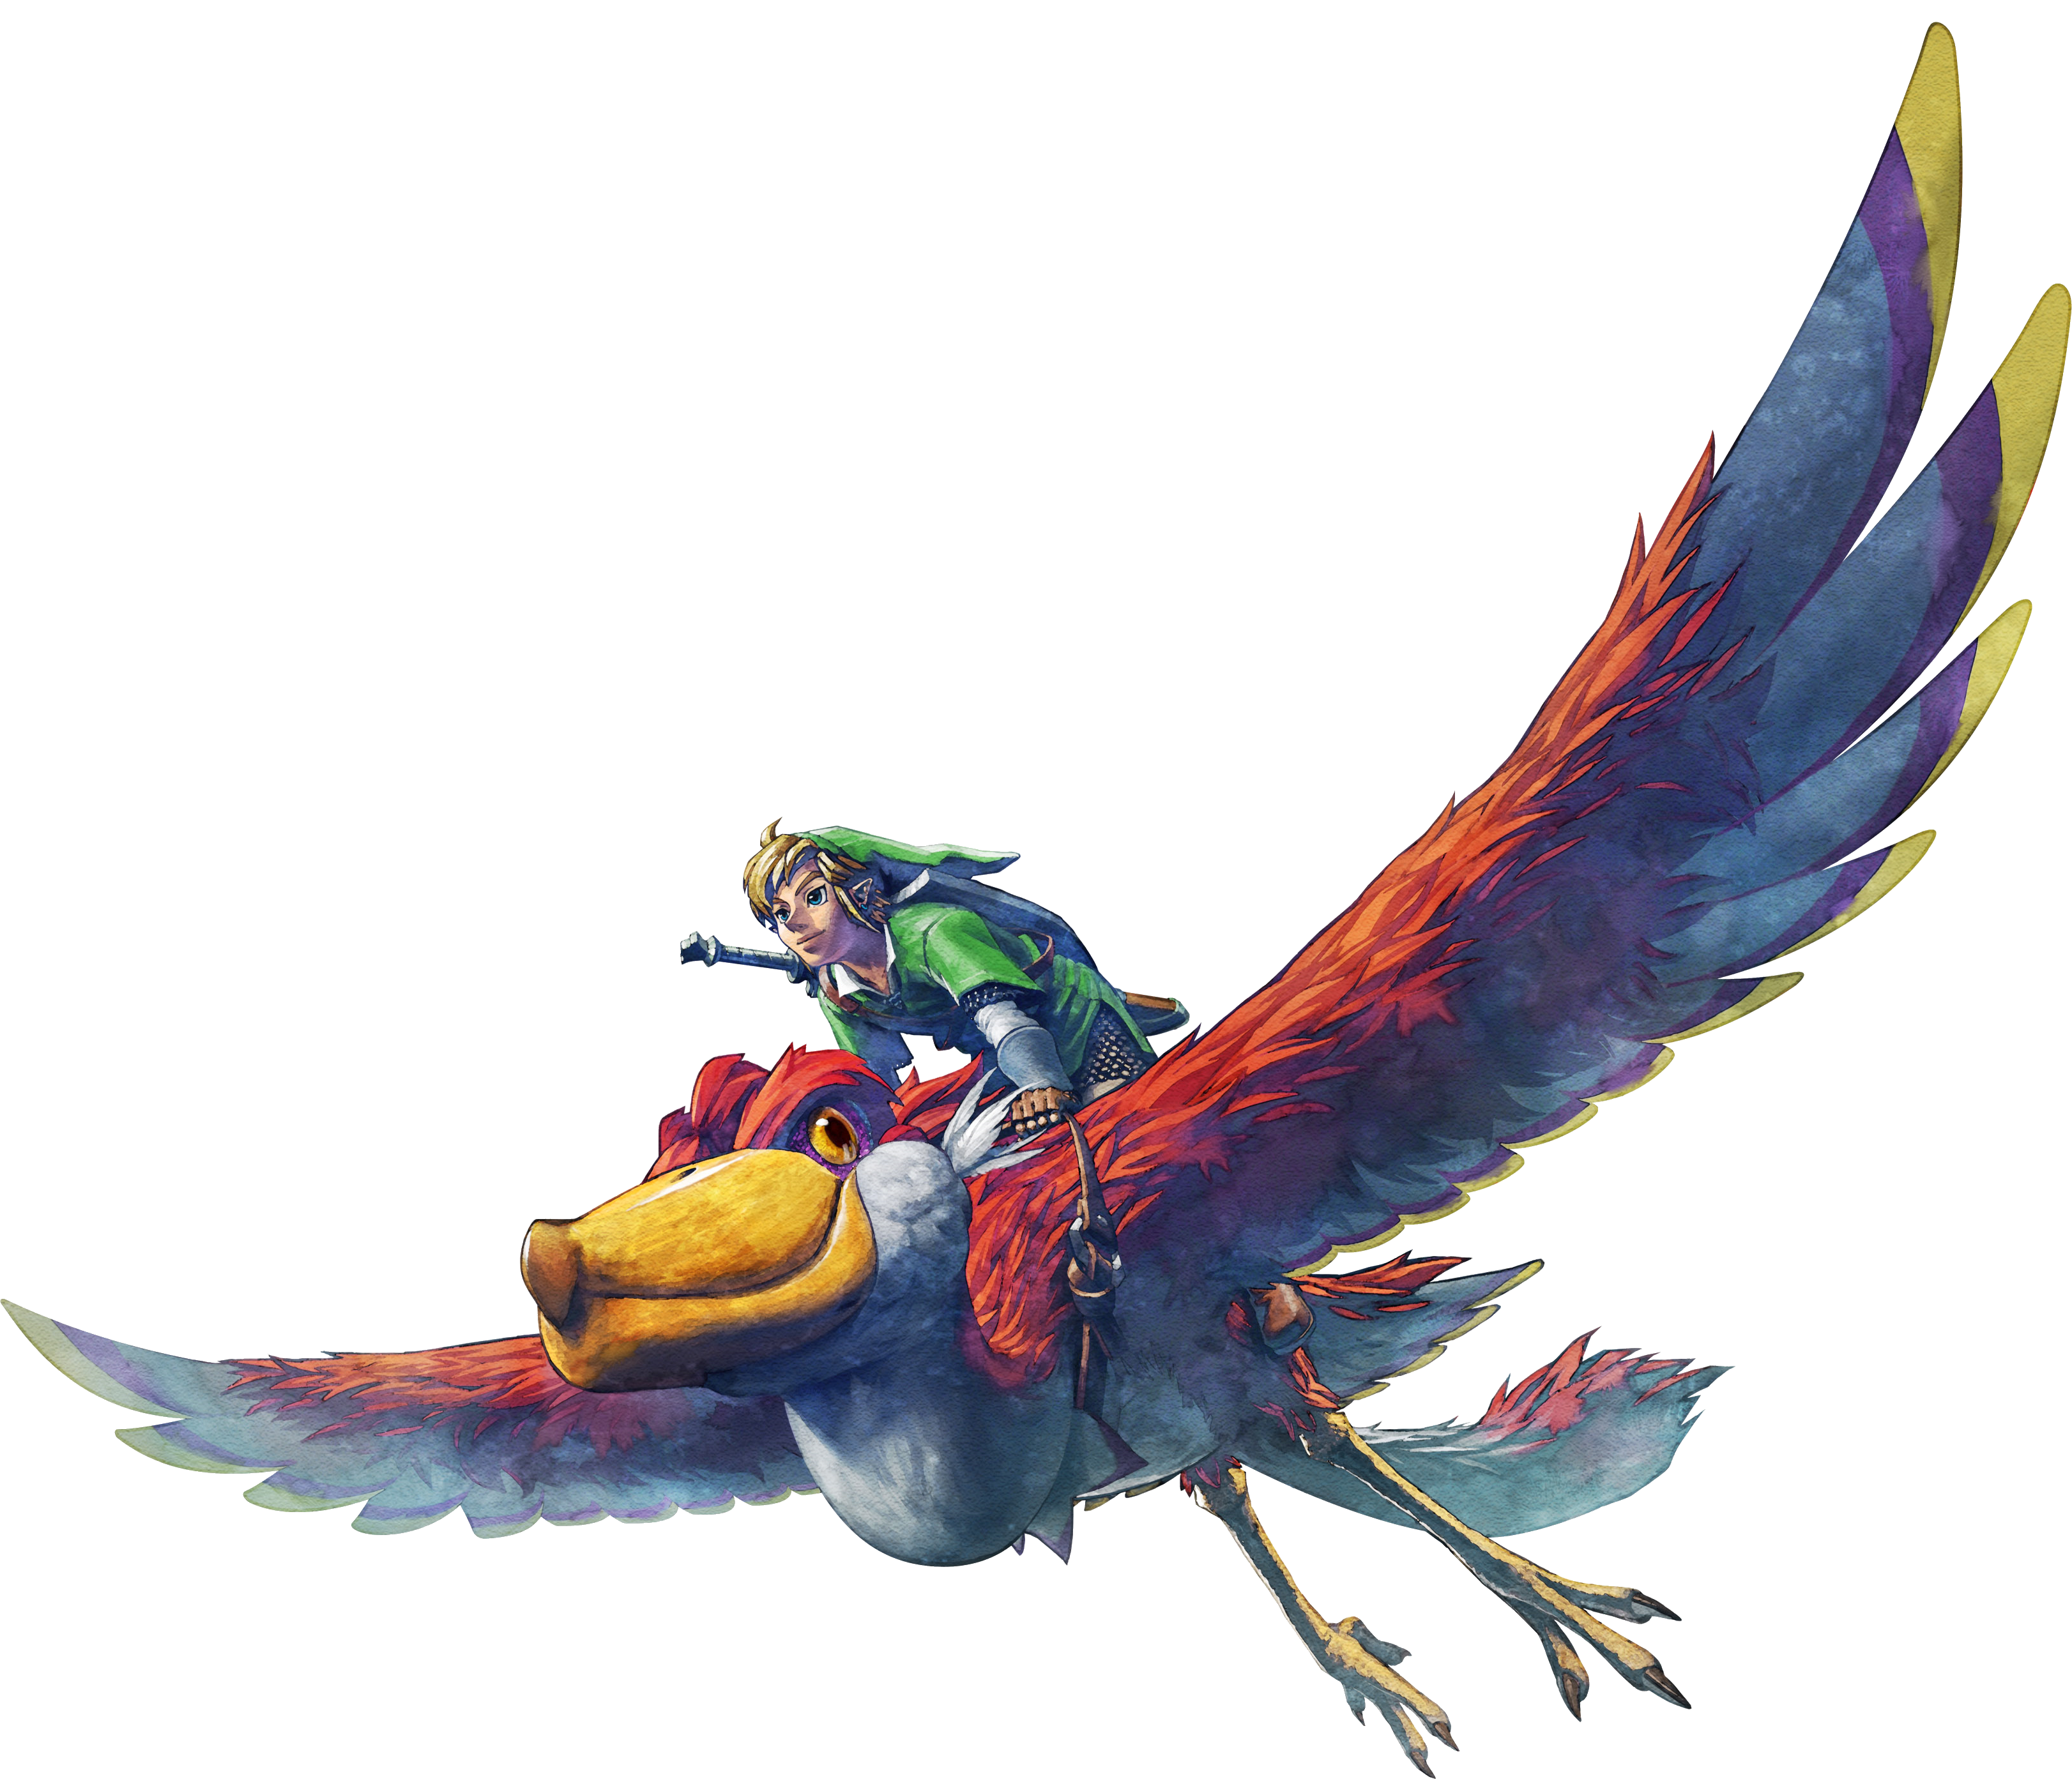 Skyward Sword: New Gameplay Footage!